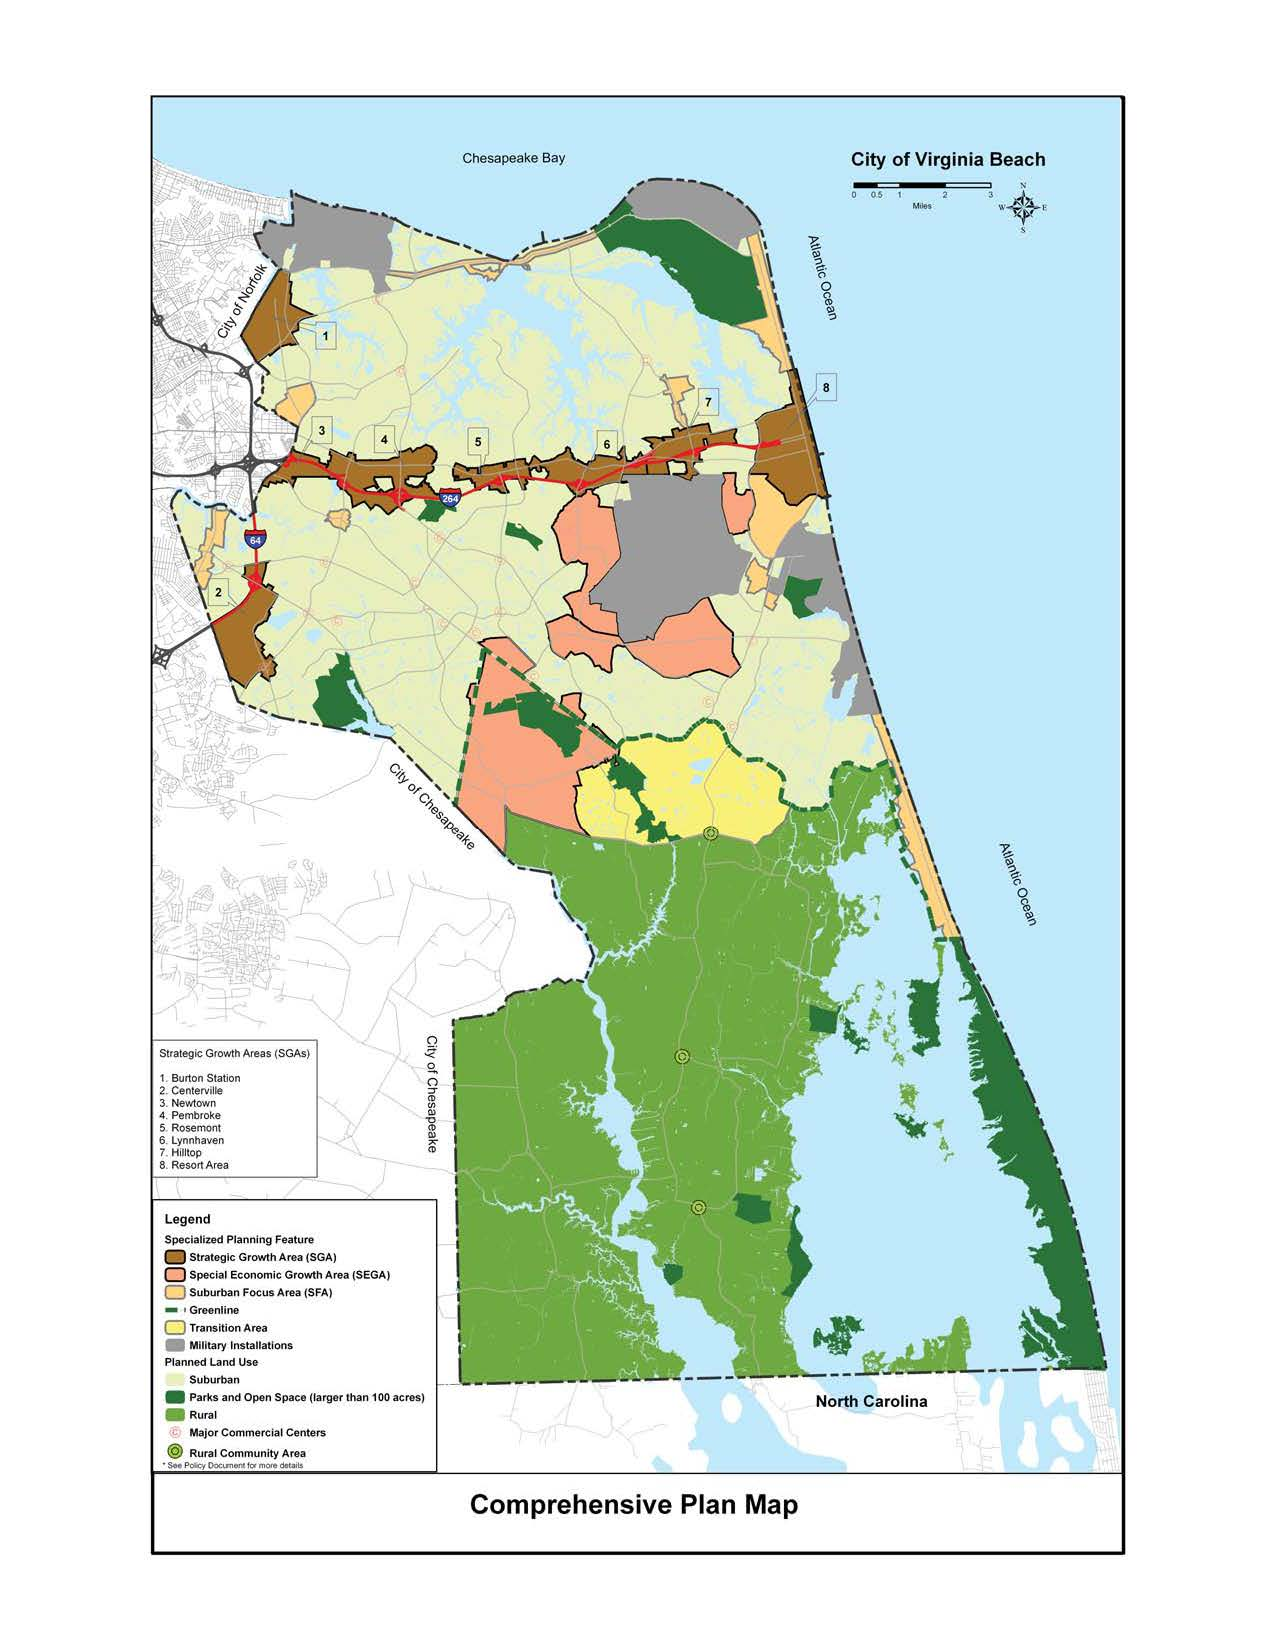 Maps VBgovcom City of Virginia Beach